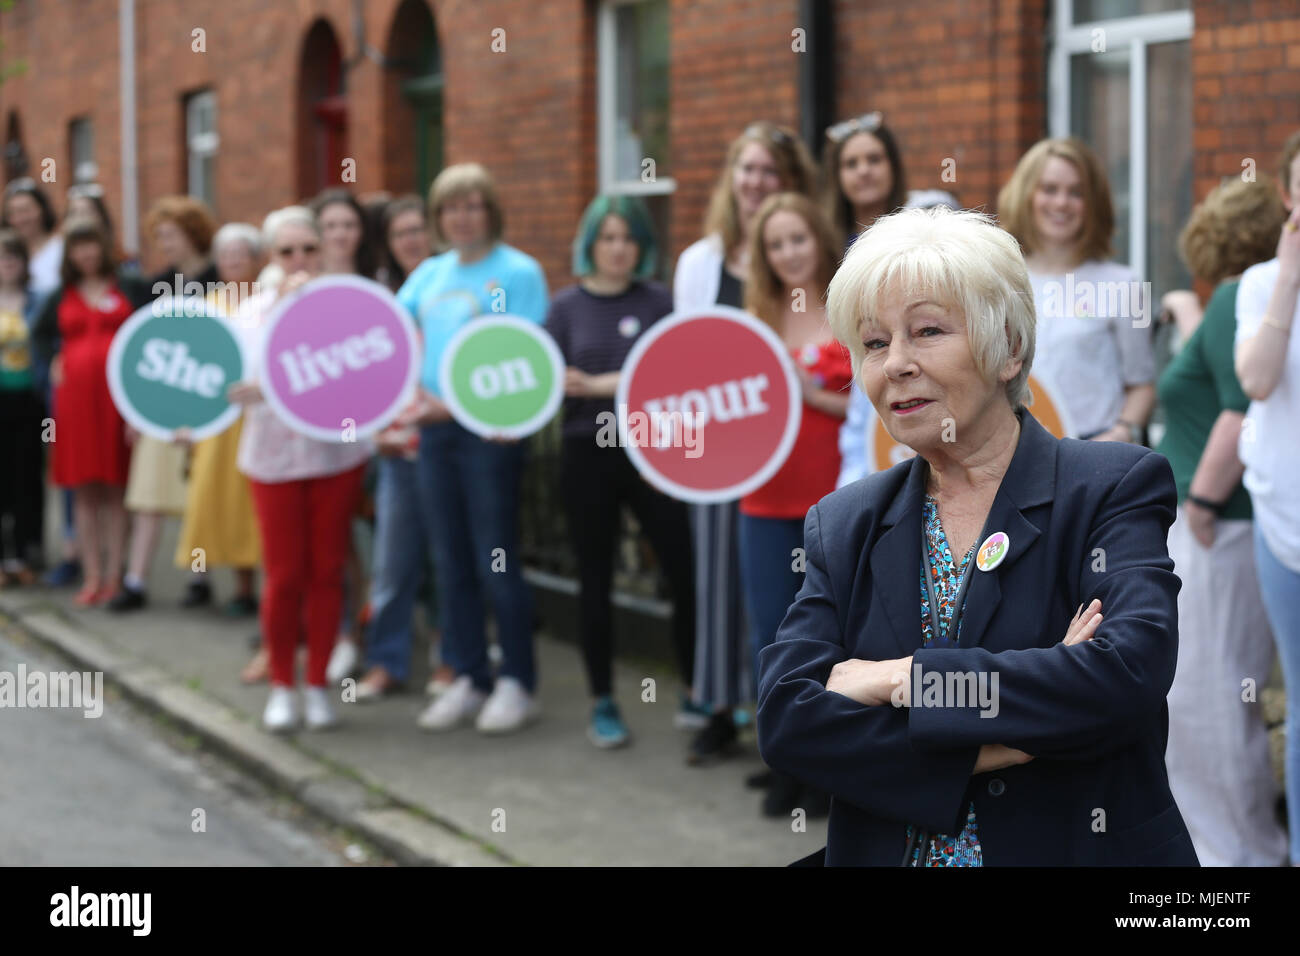 """5/5/2018. Together for Yes Launch.  Eilish O'Carroll from Mrs Brown's Boys with mothers, daughters, grannies and aunties at a """"She lives on your Street""""photocall in Phibsborough, Dublin in support of a Yes Vote in the forthcoming referendum on the 8th Amendment of the Constitution, which seeks to change the existing restrictions on women access to abortion facilities in Ireland. Photo: RollingNews.ie - Stock Image"""